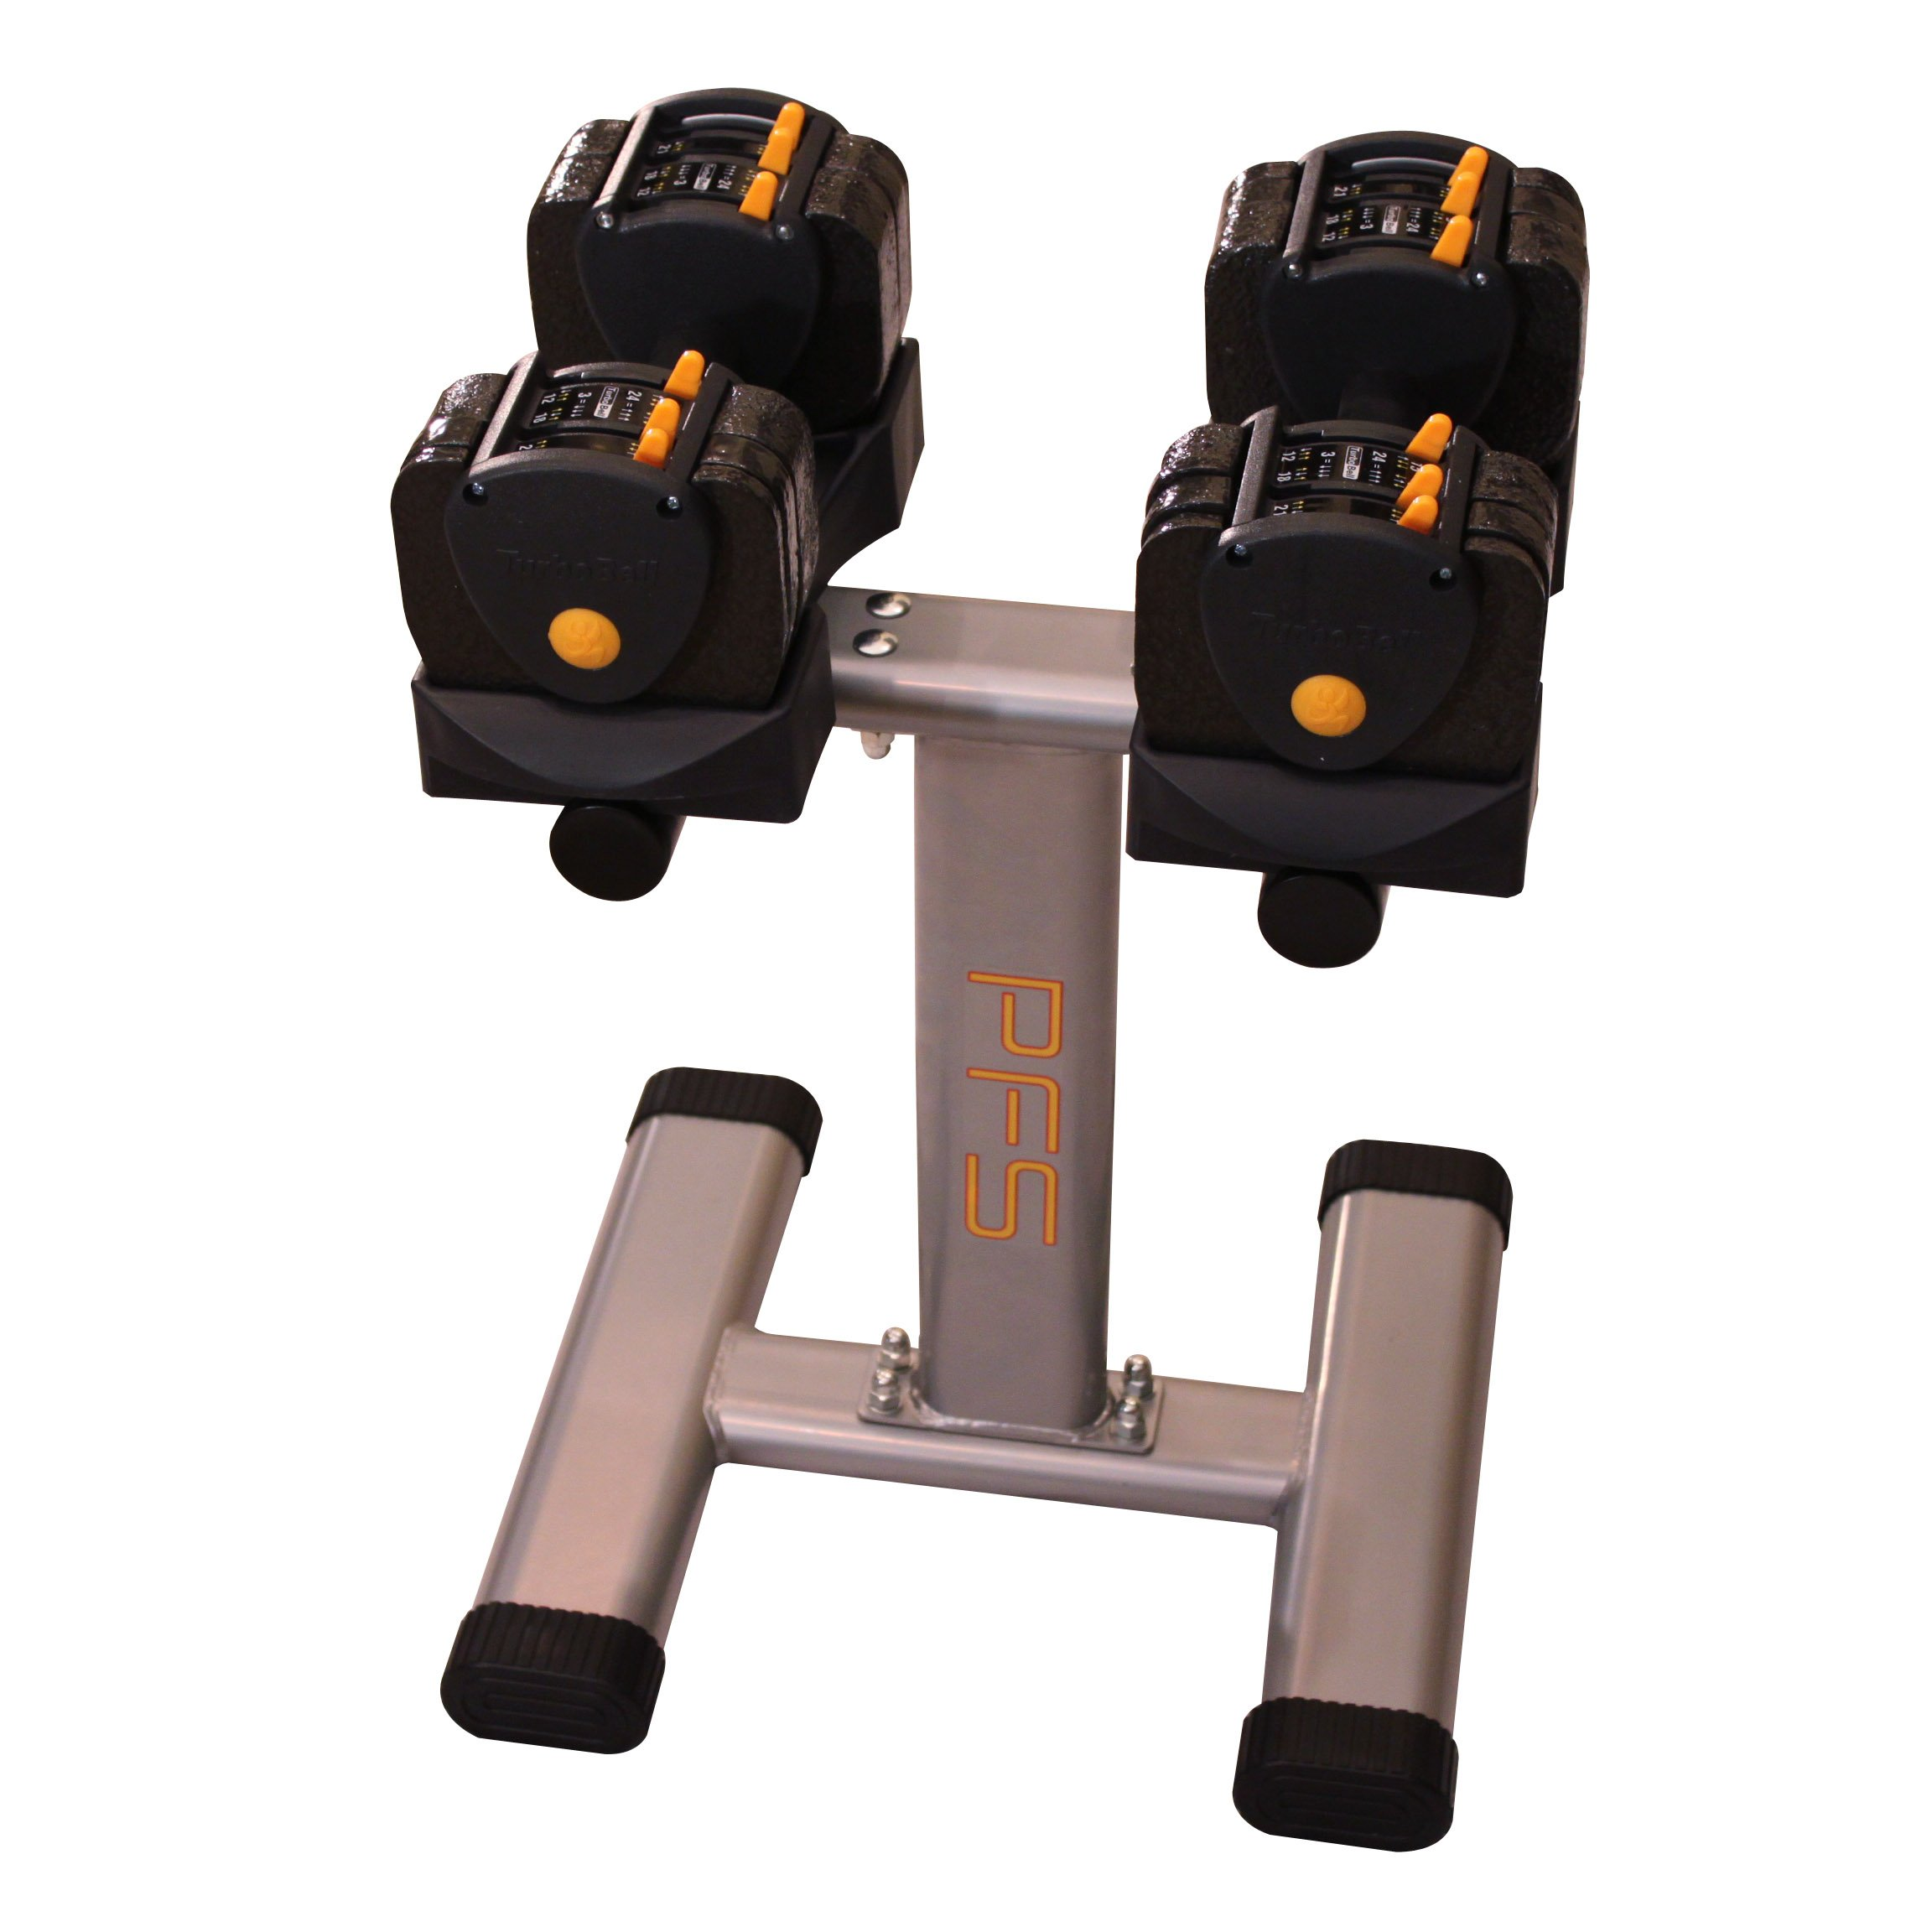 Performance Fitness Systems Adjustable Dumbbells with Stand - 3-24 lbs.